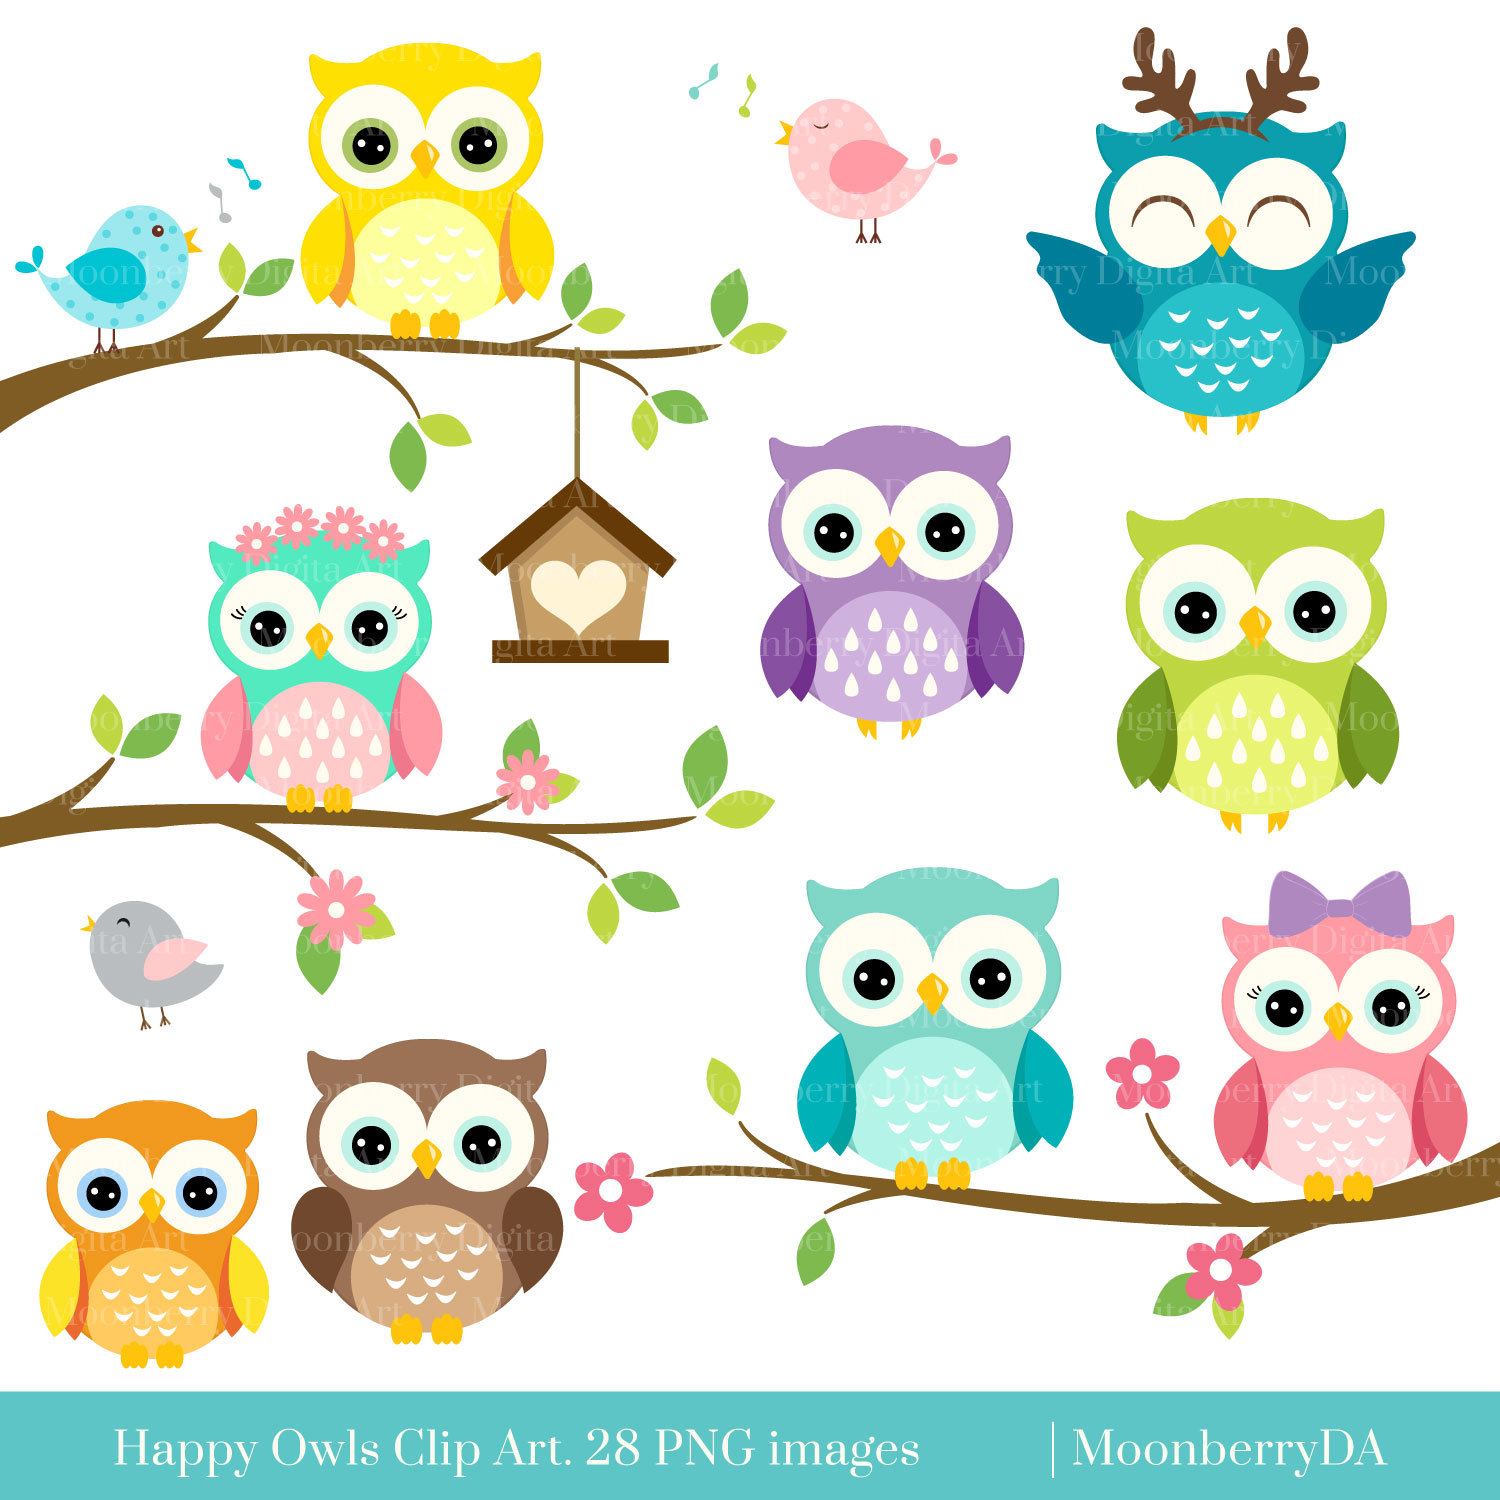 Baking clipart owl. Happy owls clip art